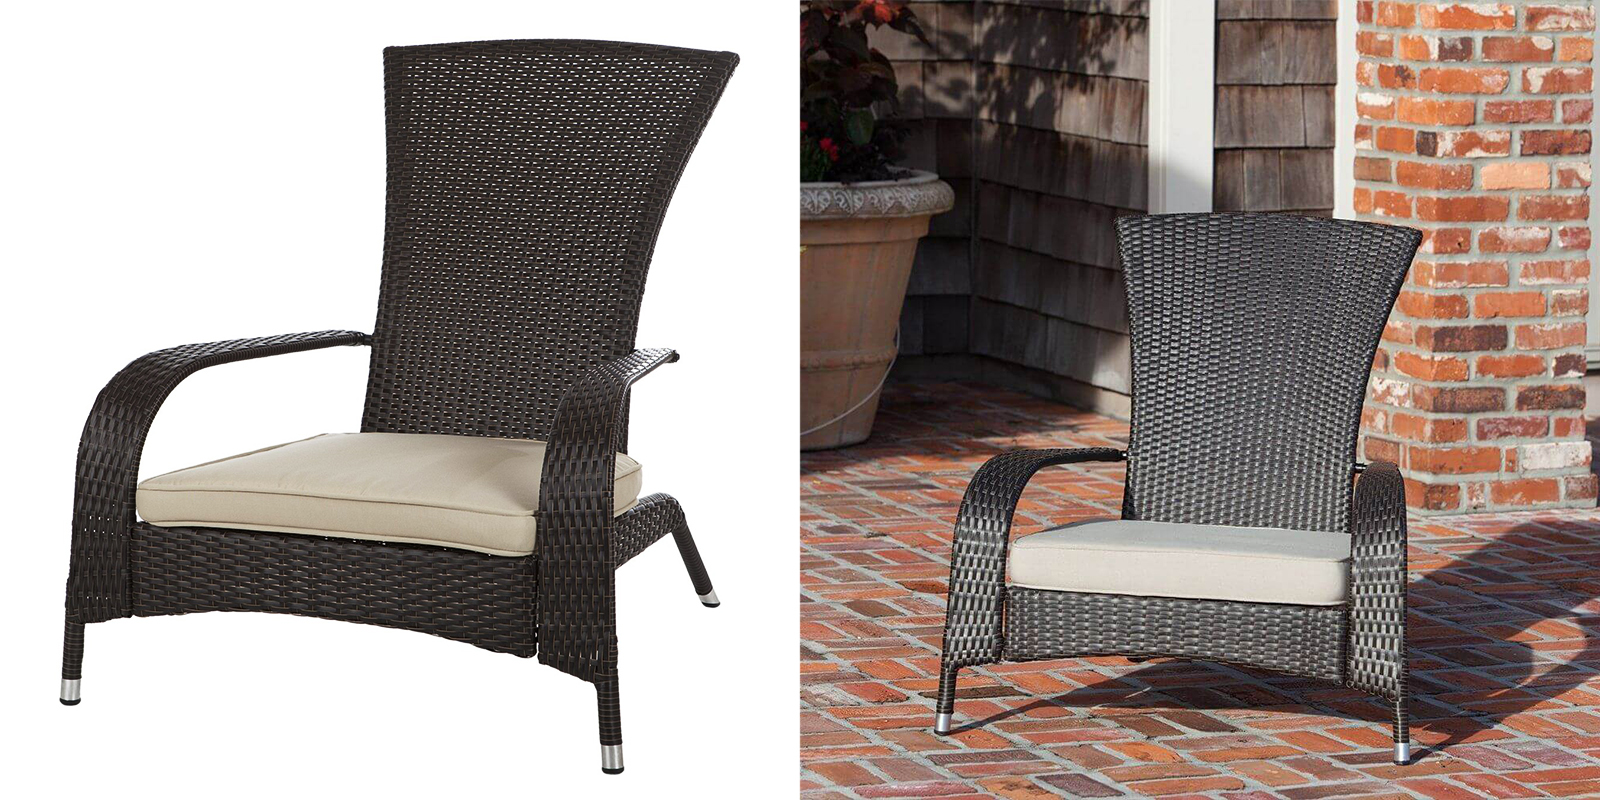 Wicker Adirondack Chair 25 Best Patio Chairs To Buy Right Now